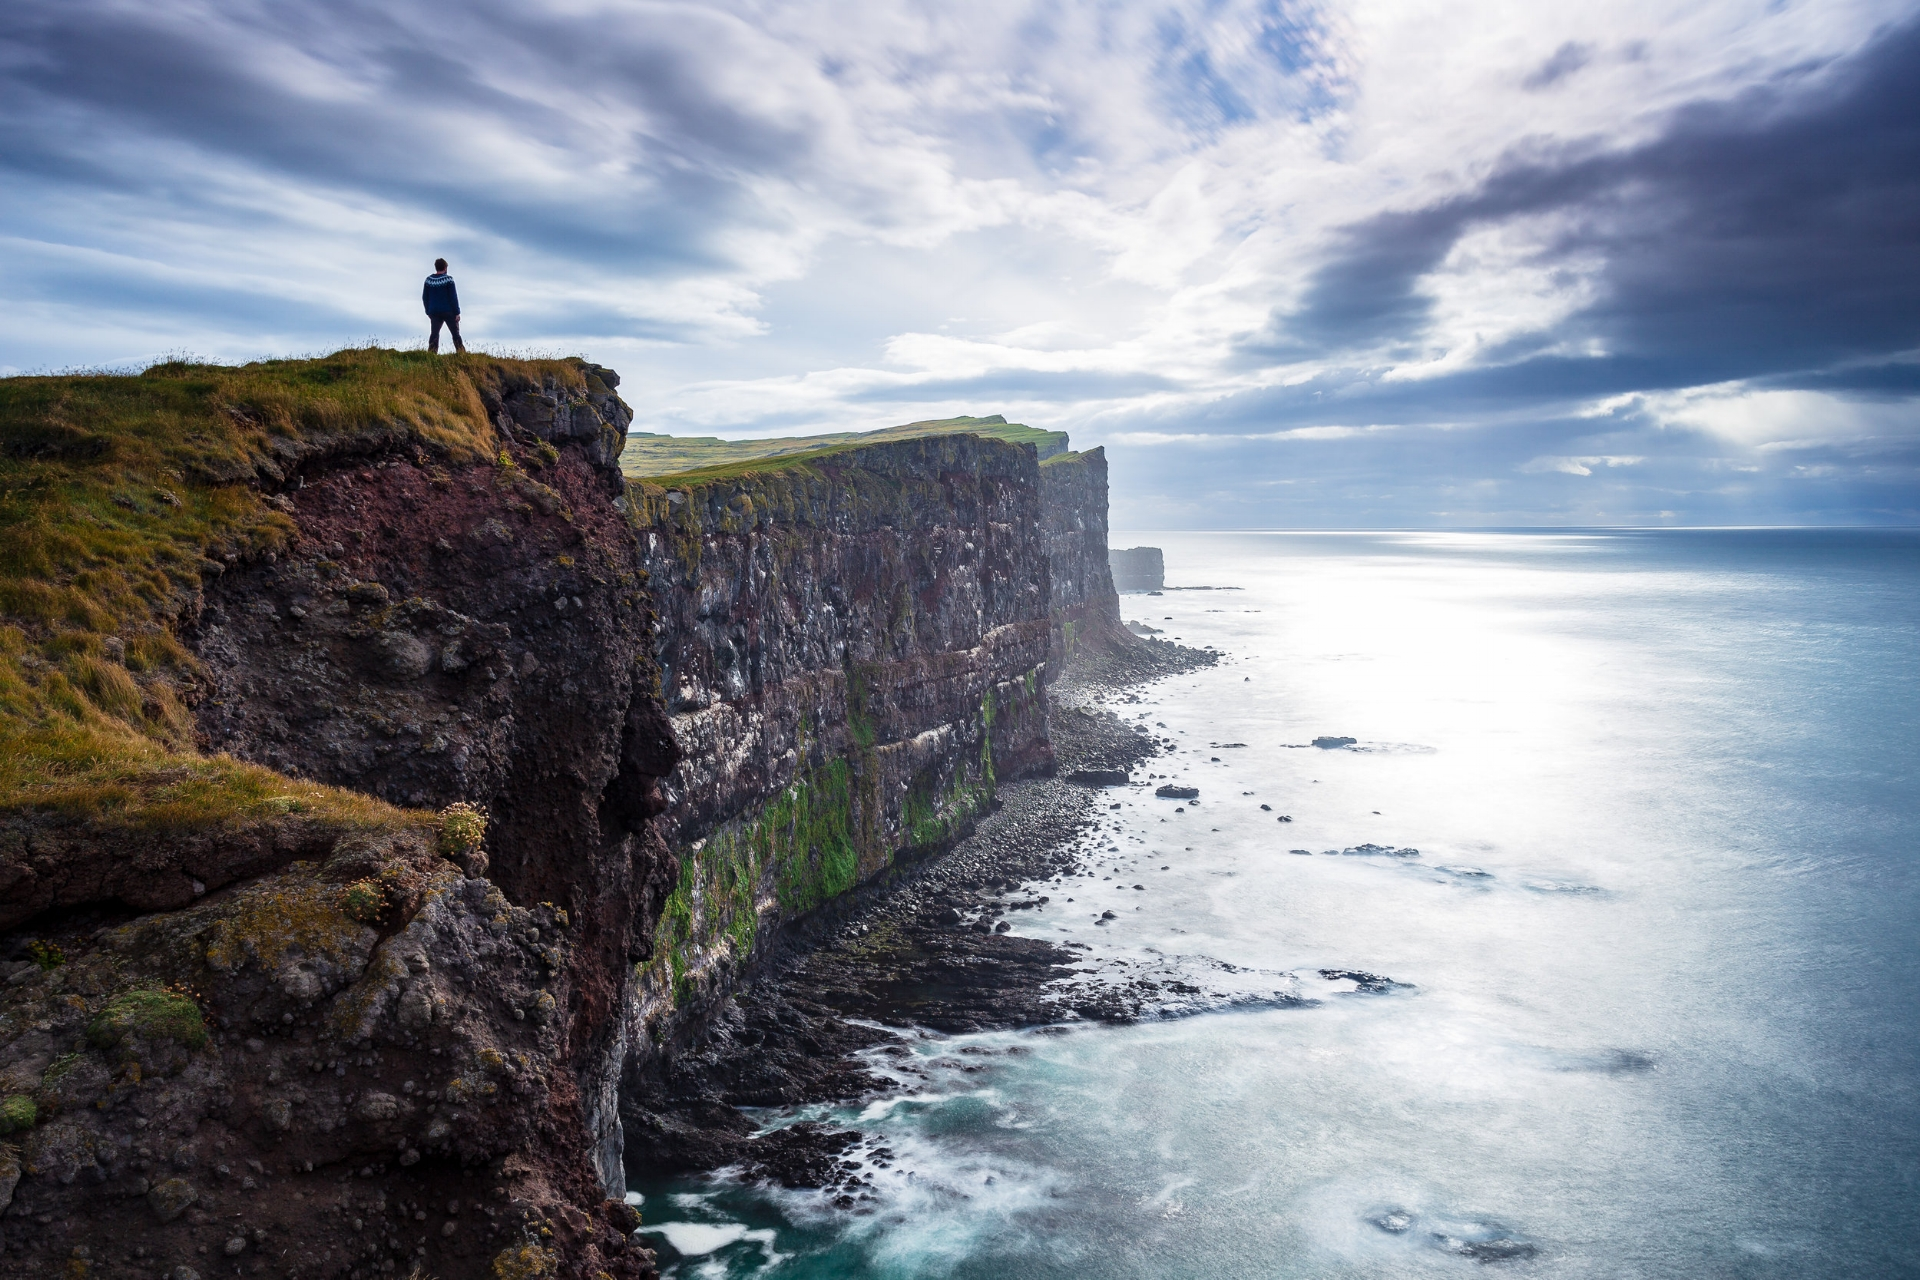 The cliffs at Látrabjarg in the West Fjords are a sight to behold. This is the western most point of Iceland and Europe.